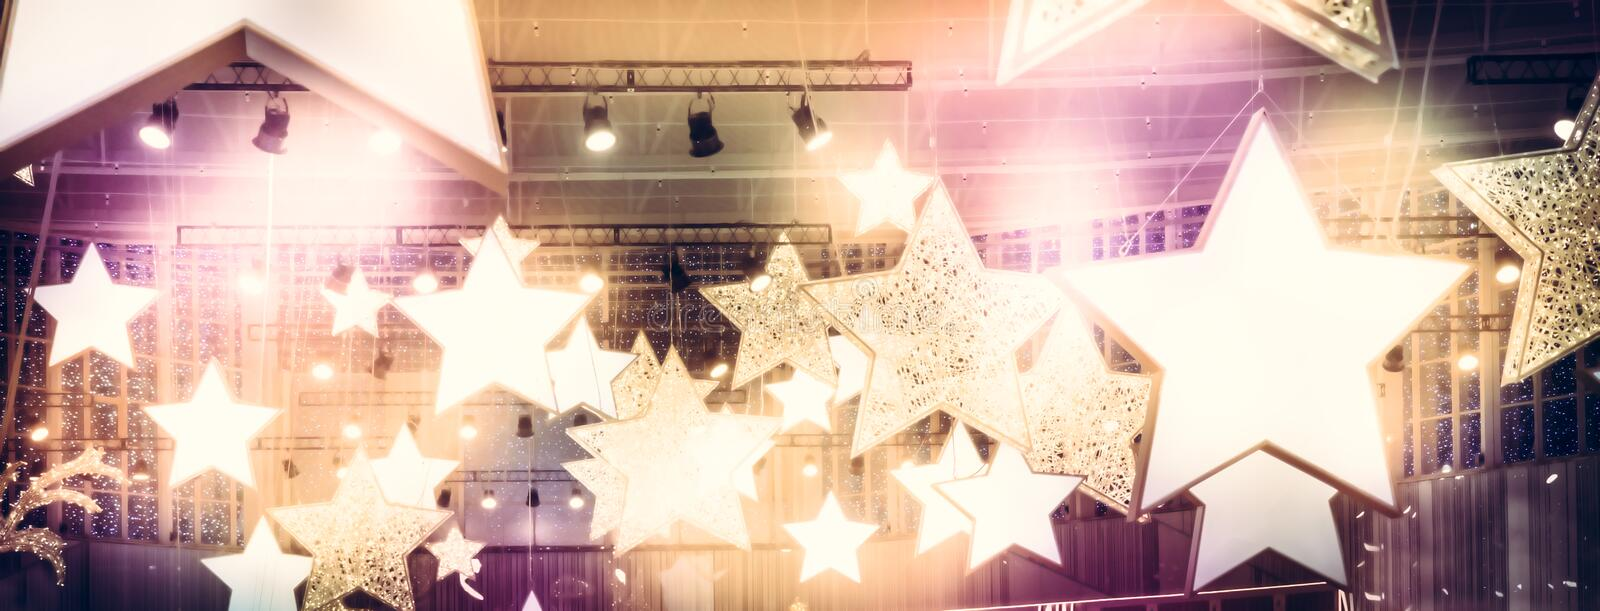 Stars spotlights soffits as finest hour celebrity show stage performance background with golden pink lights stock image